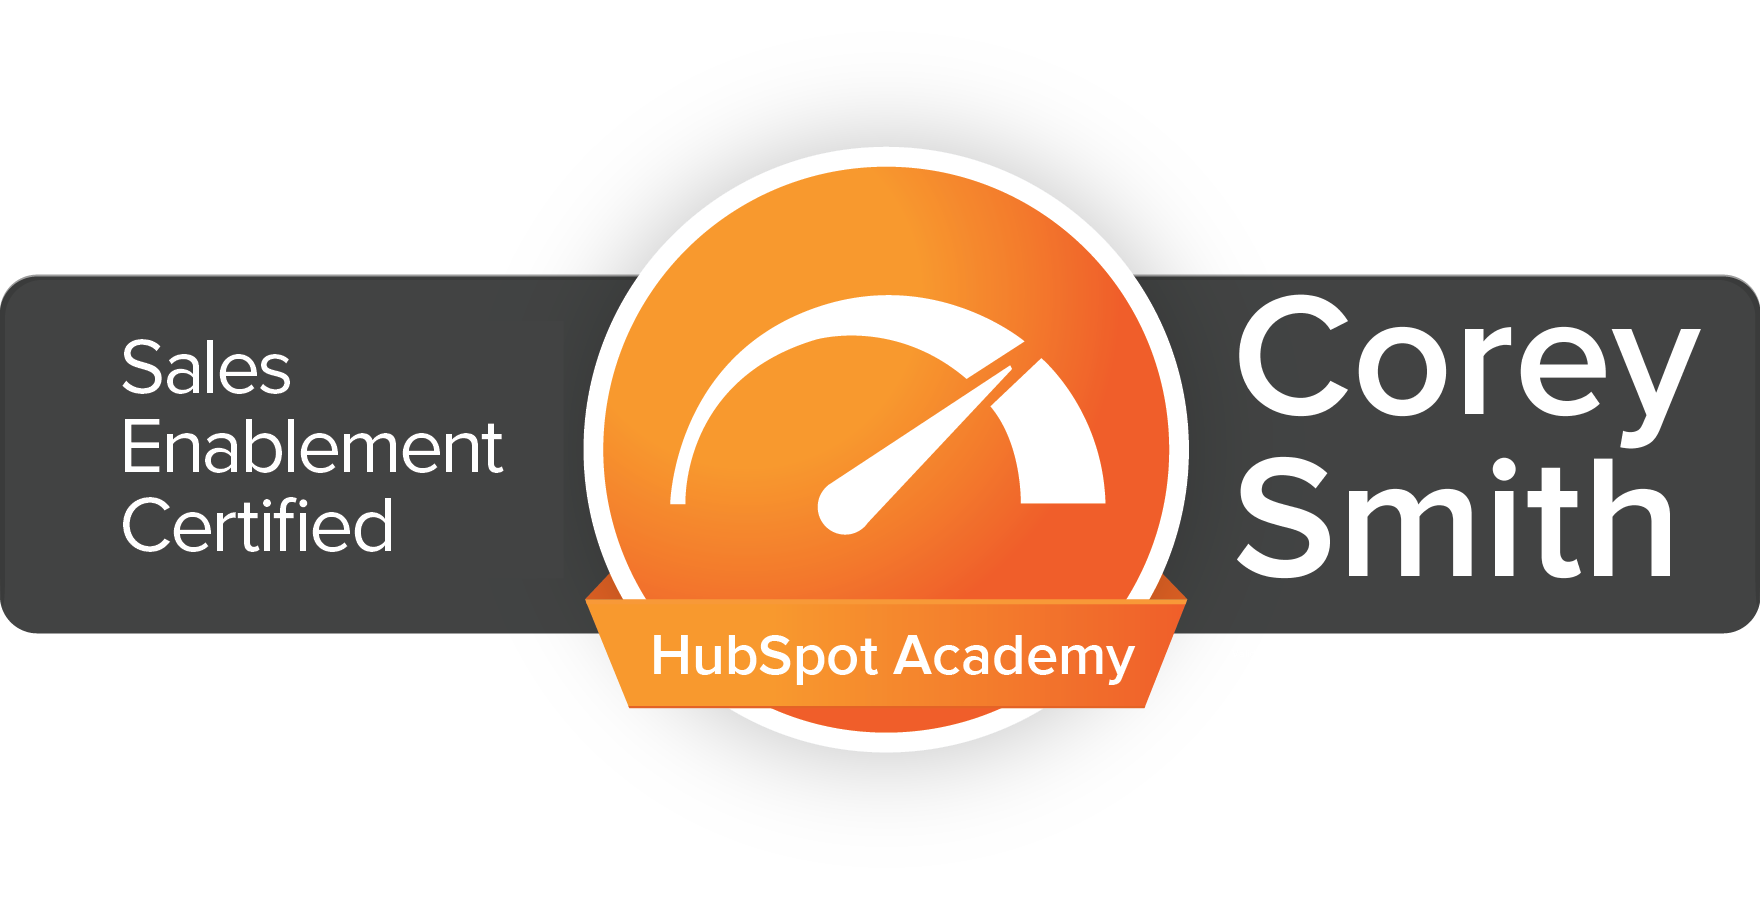 Sales Enablement - HubSpot Academy